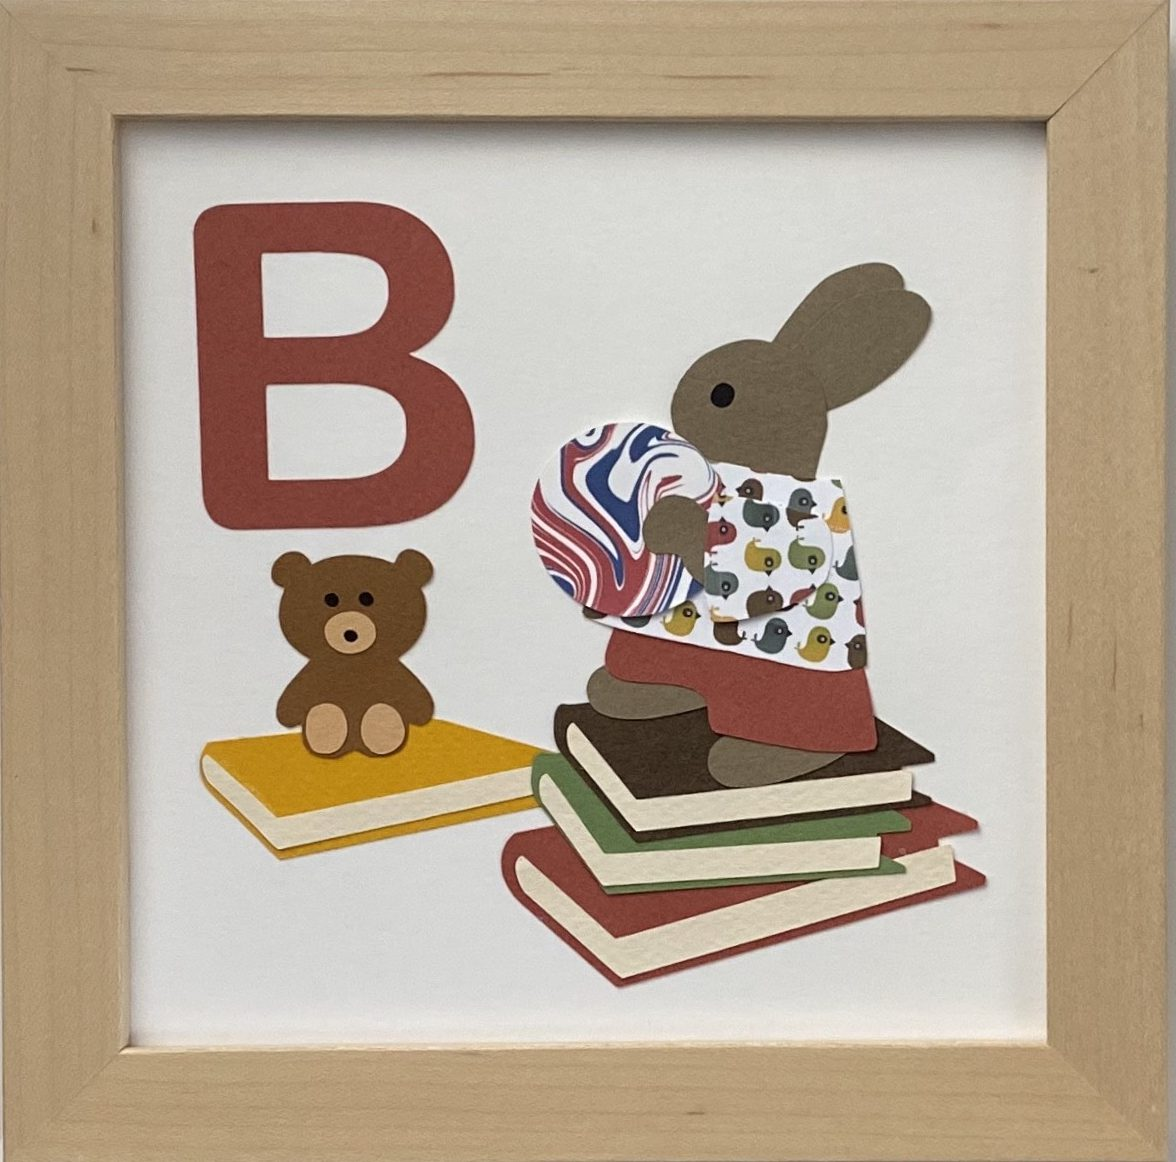 B initial sign - a rabbit with books, a toy bear, and a ball